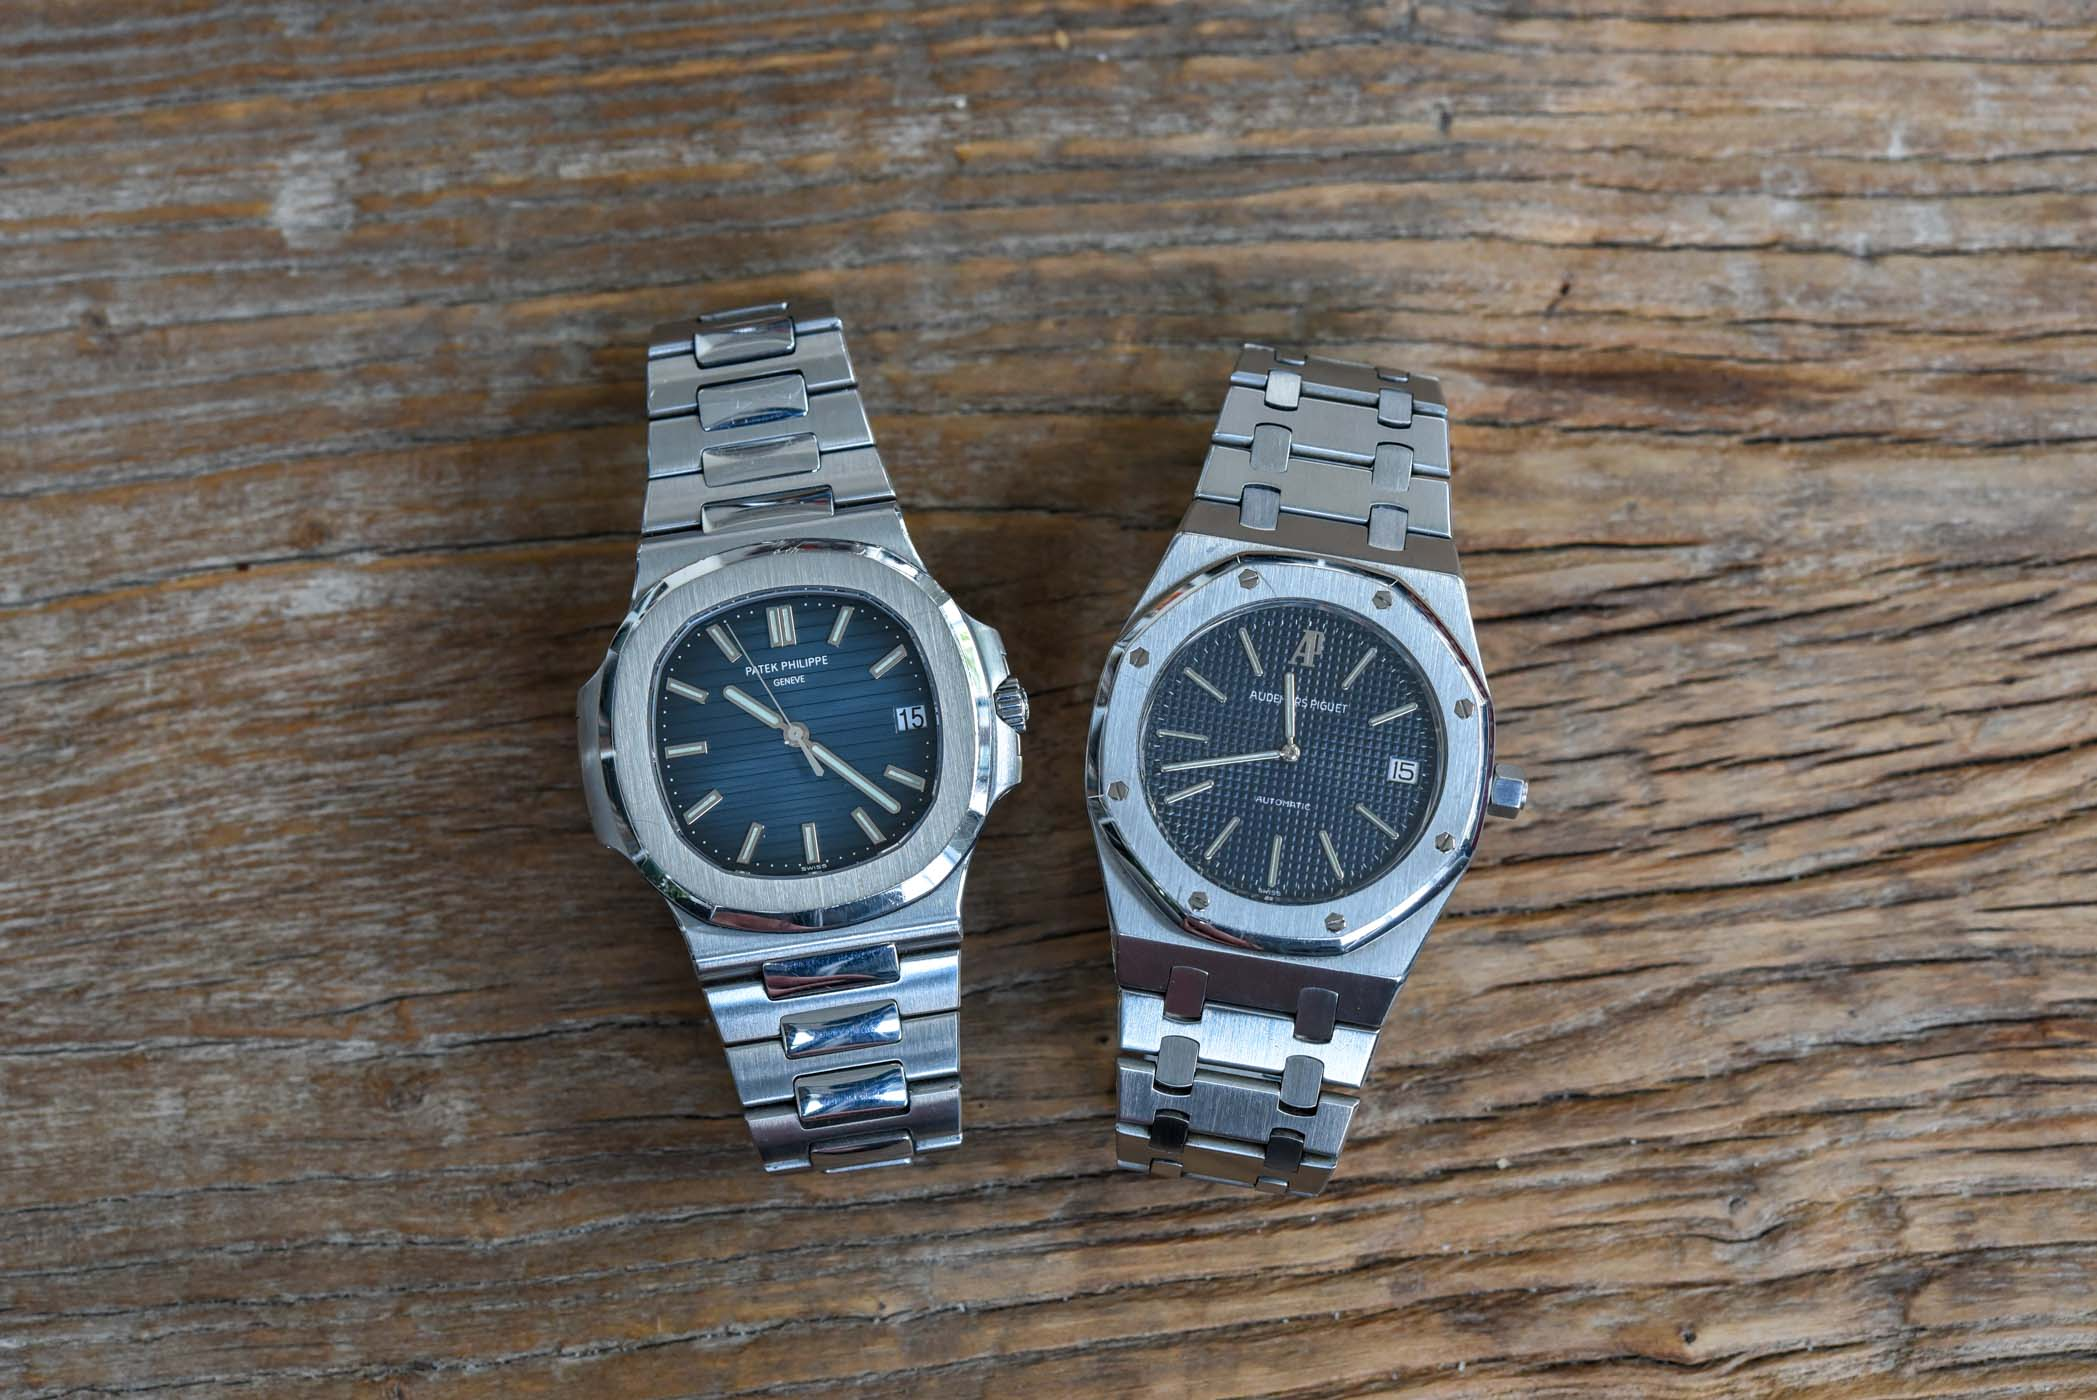 Patek Philippe Nautilus 5711 and Audemars Piguet Royal Oak 5402